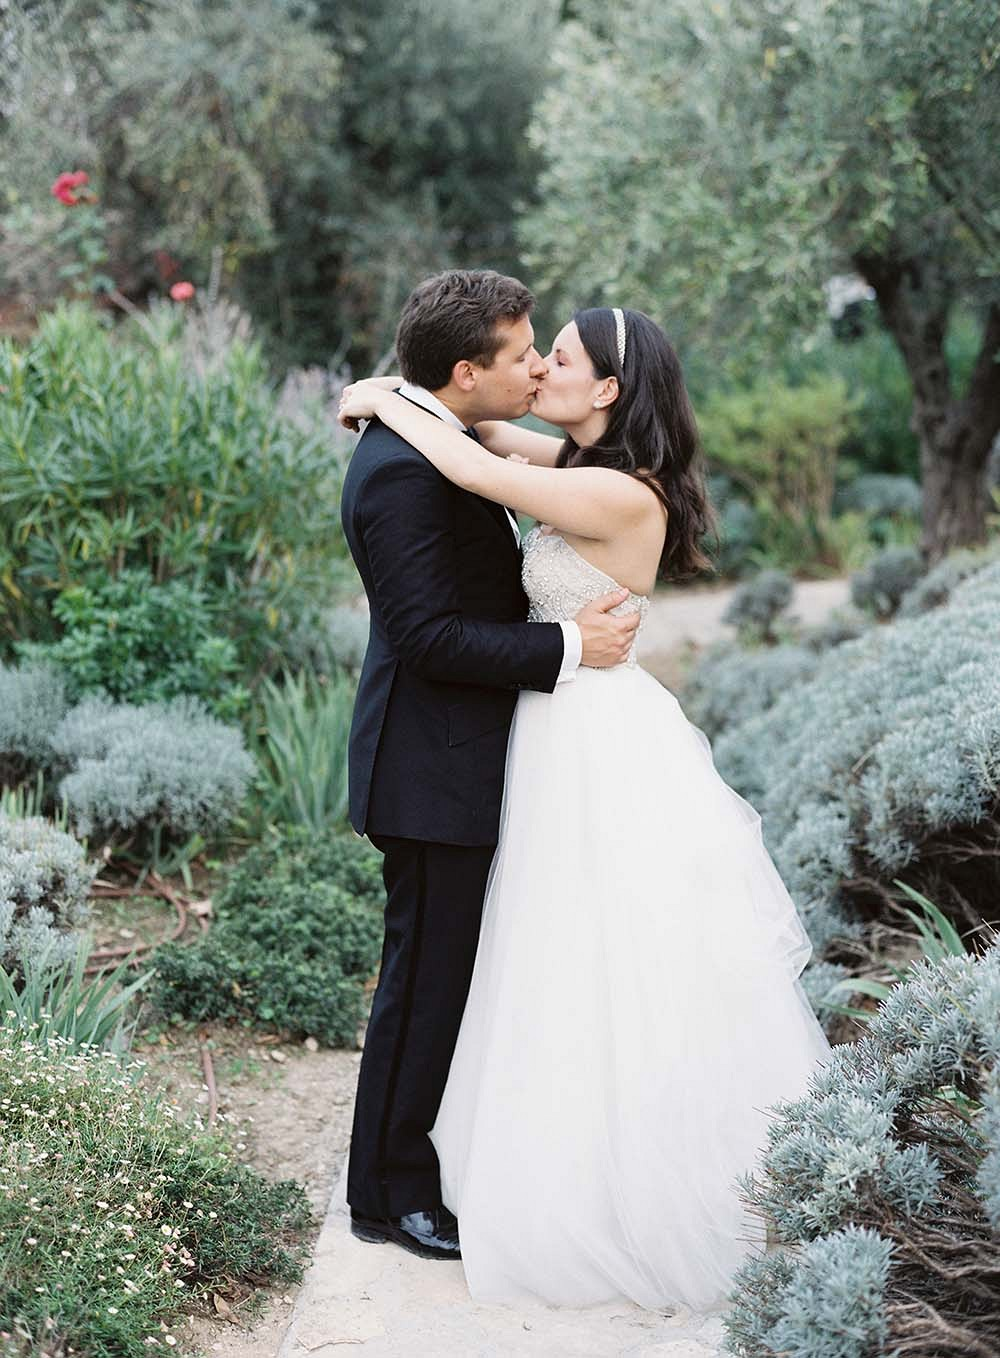 Carolina and Greg's Elegant French Riviera Wedding